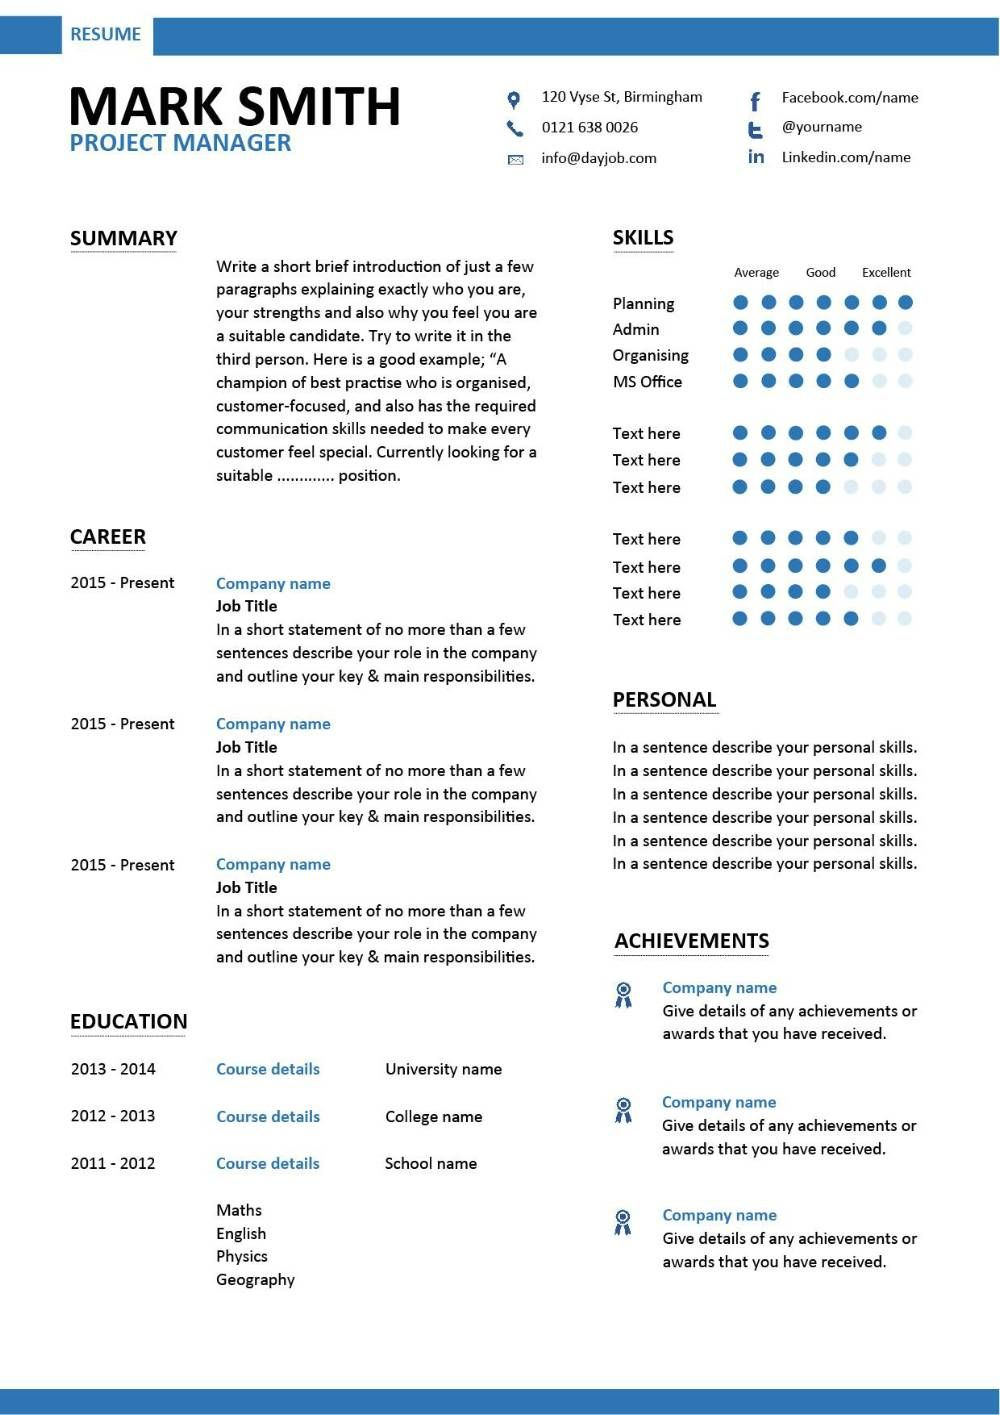 Project manager CV Graphic design resume, Project